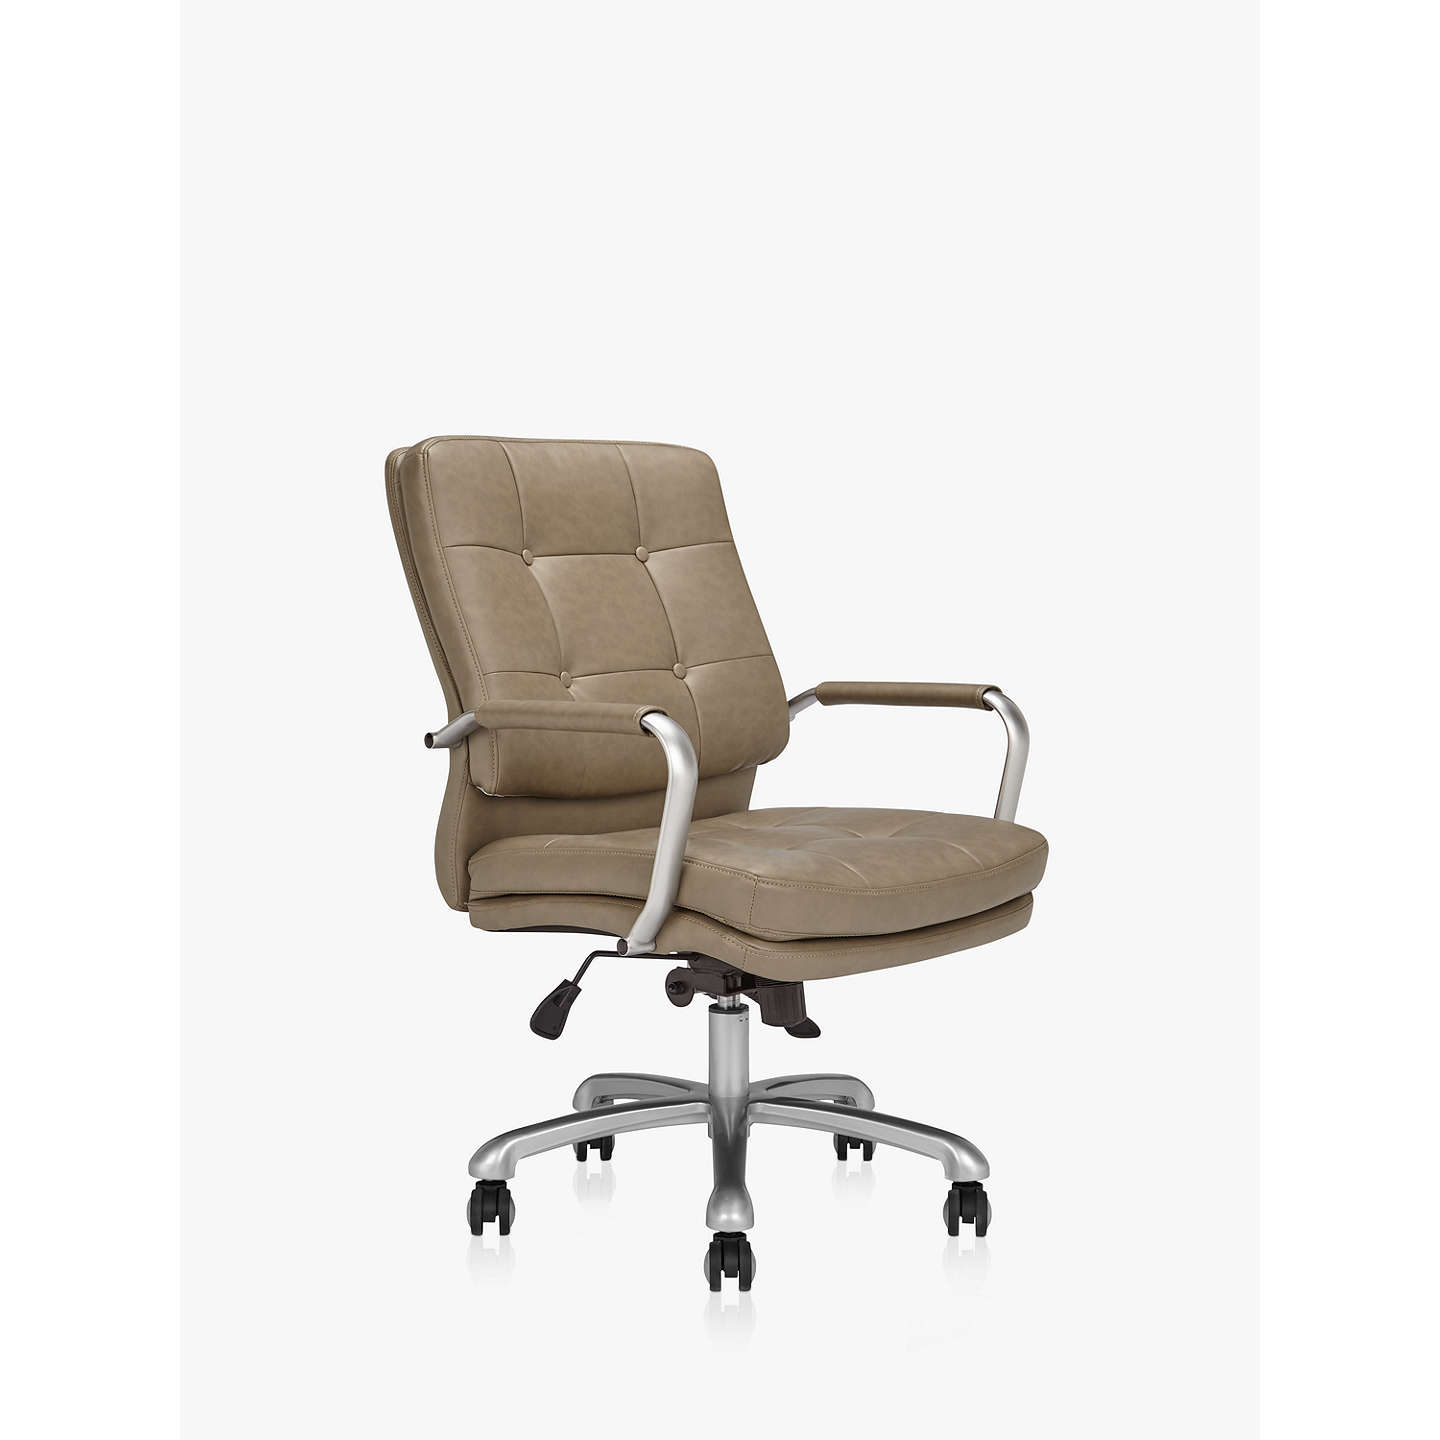 office chairs john lewis modren office to office chairs john lewis